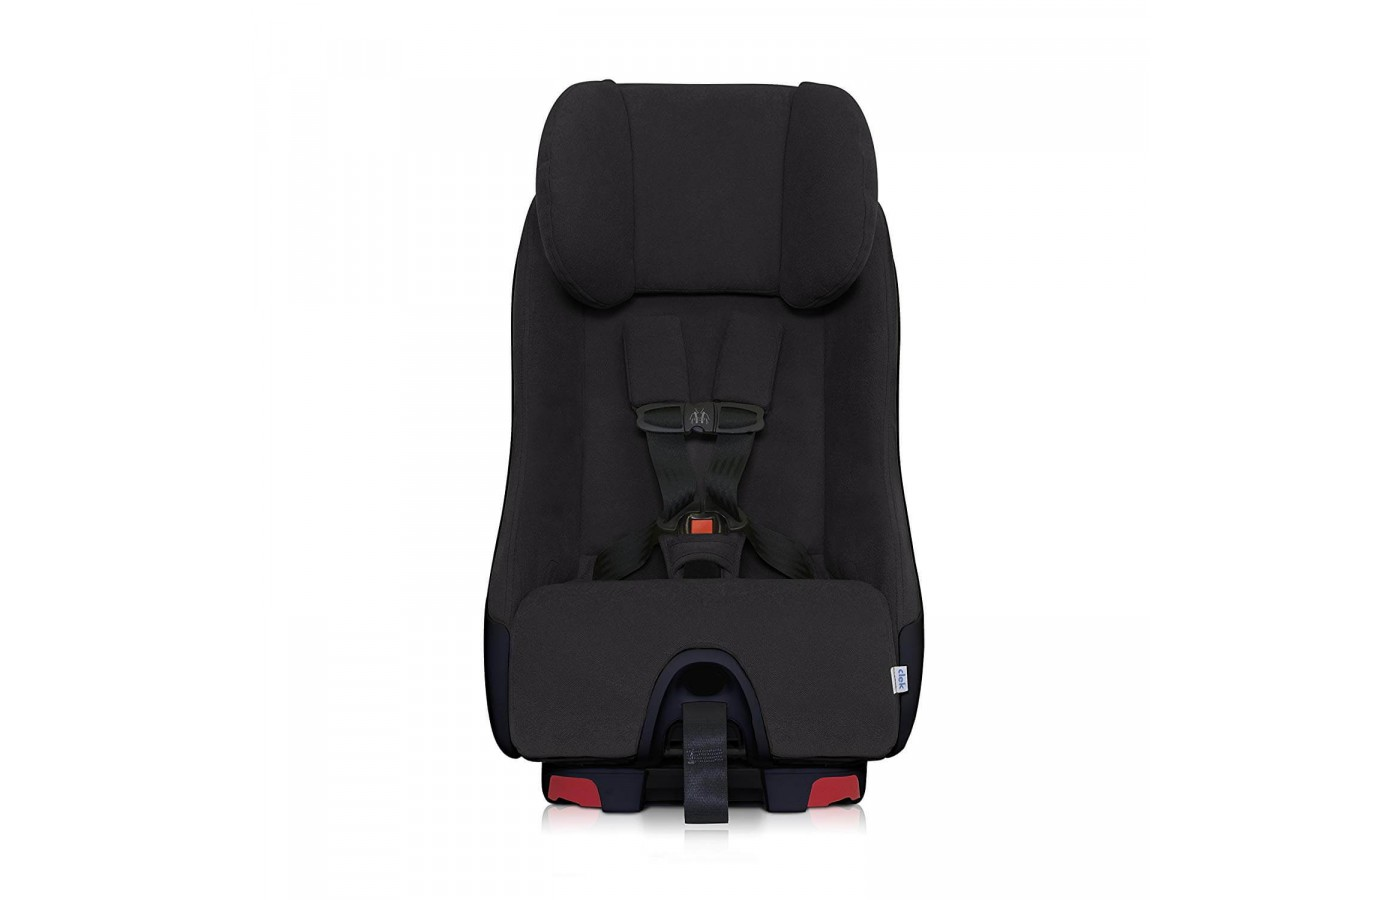 The Clek Foonf is one of the most luxurious convertible car seats out there.